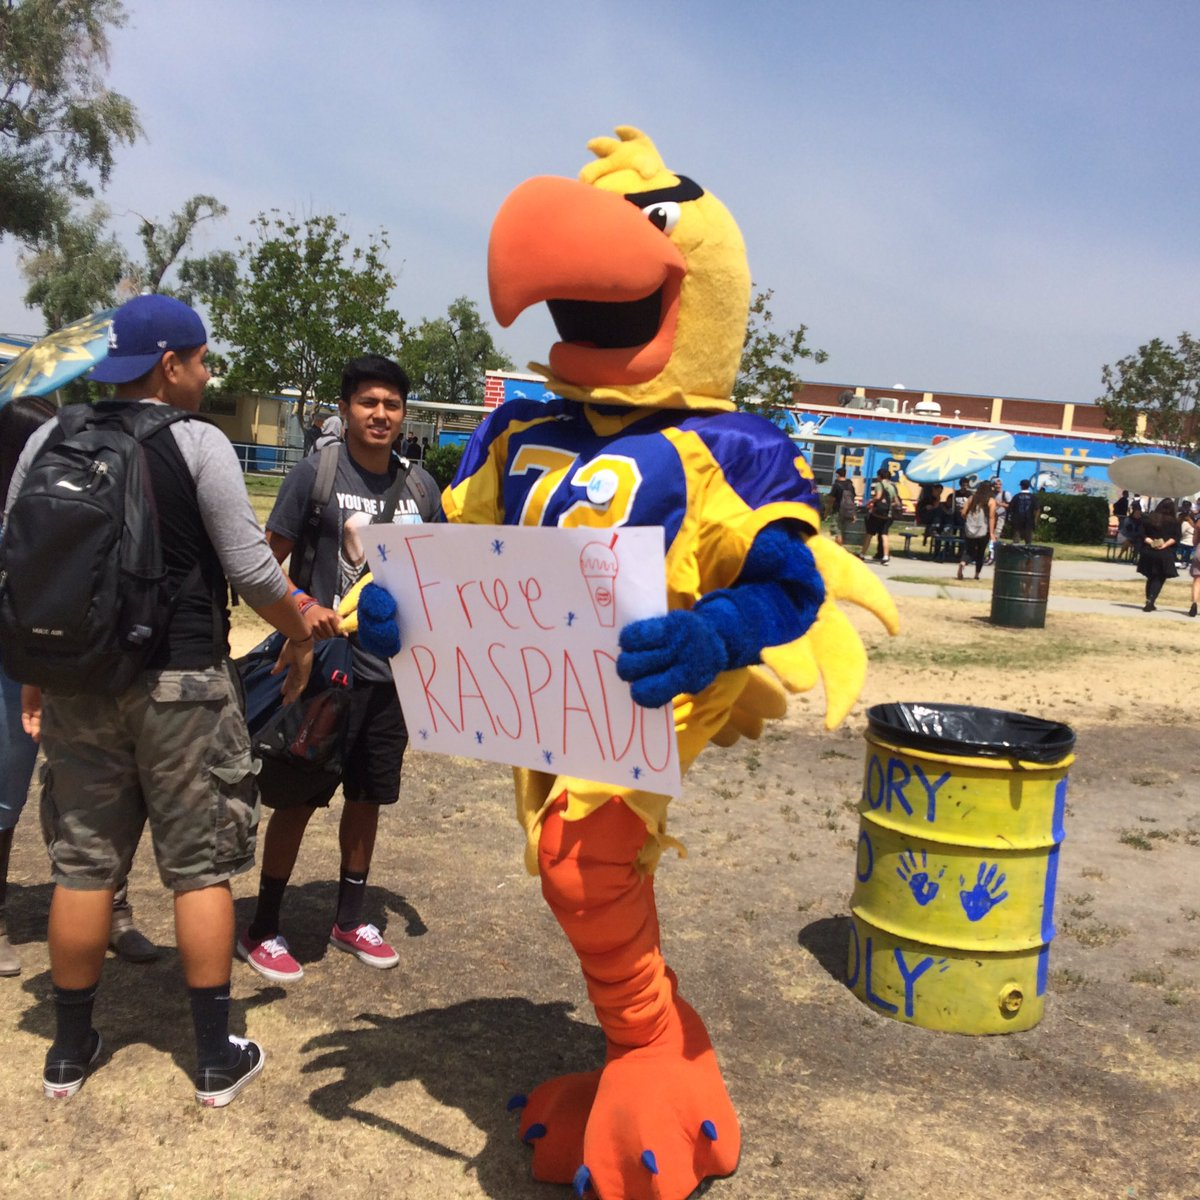 Thanks @LAUnitedWay layouthvote for encouraging students to find their voices - and Joe Parrot too #layouthvote https://t.co/bP08yJCVOy